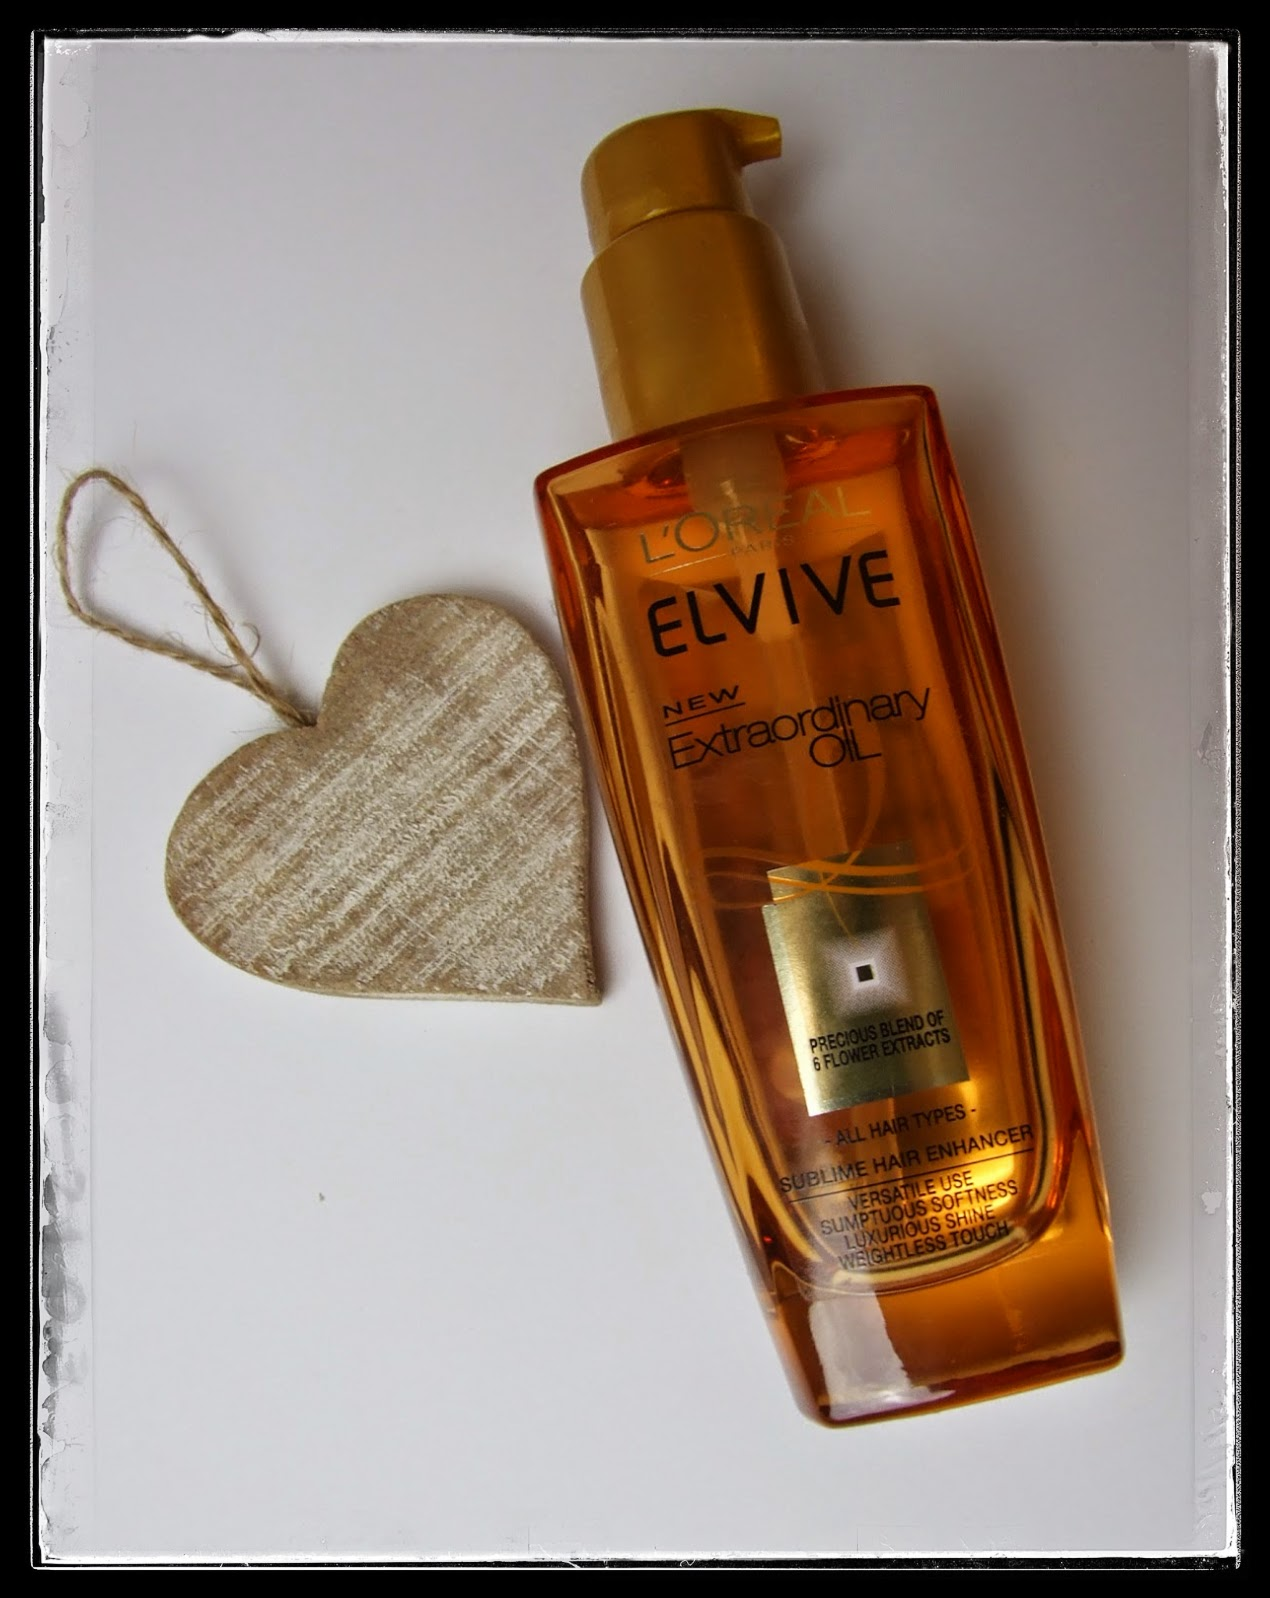 L'oreal elvive hair oil